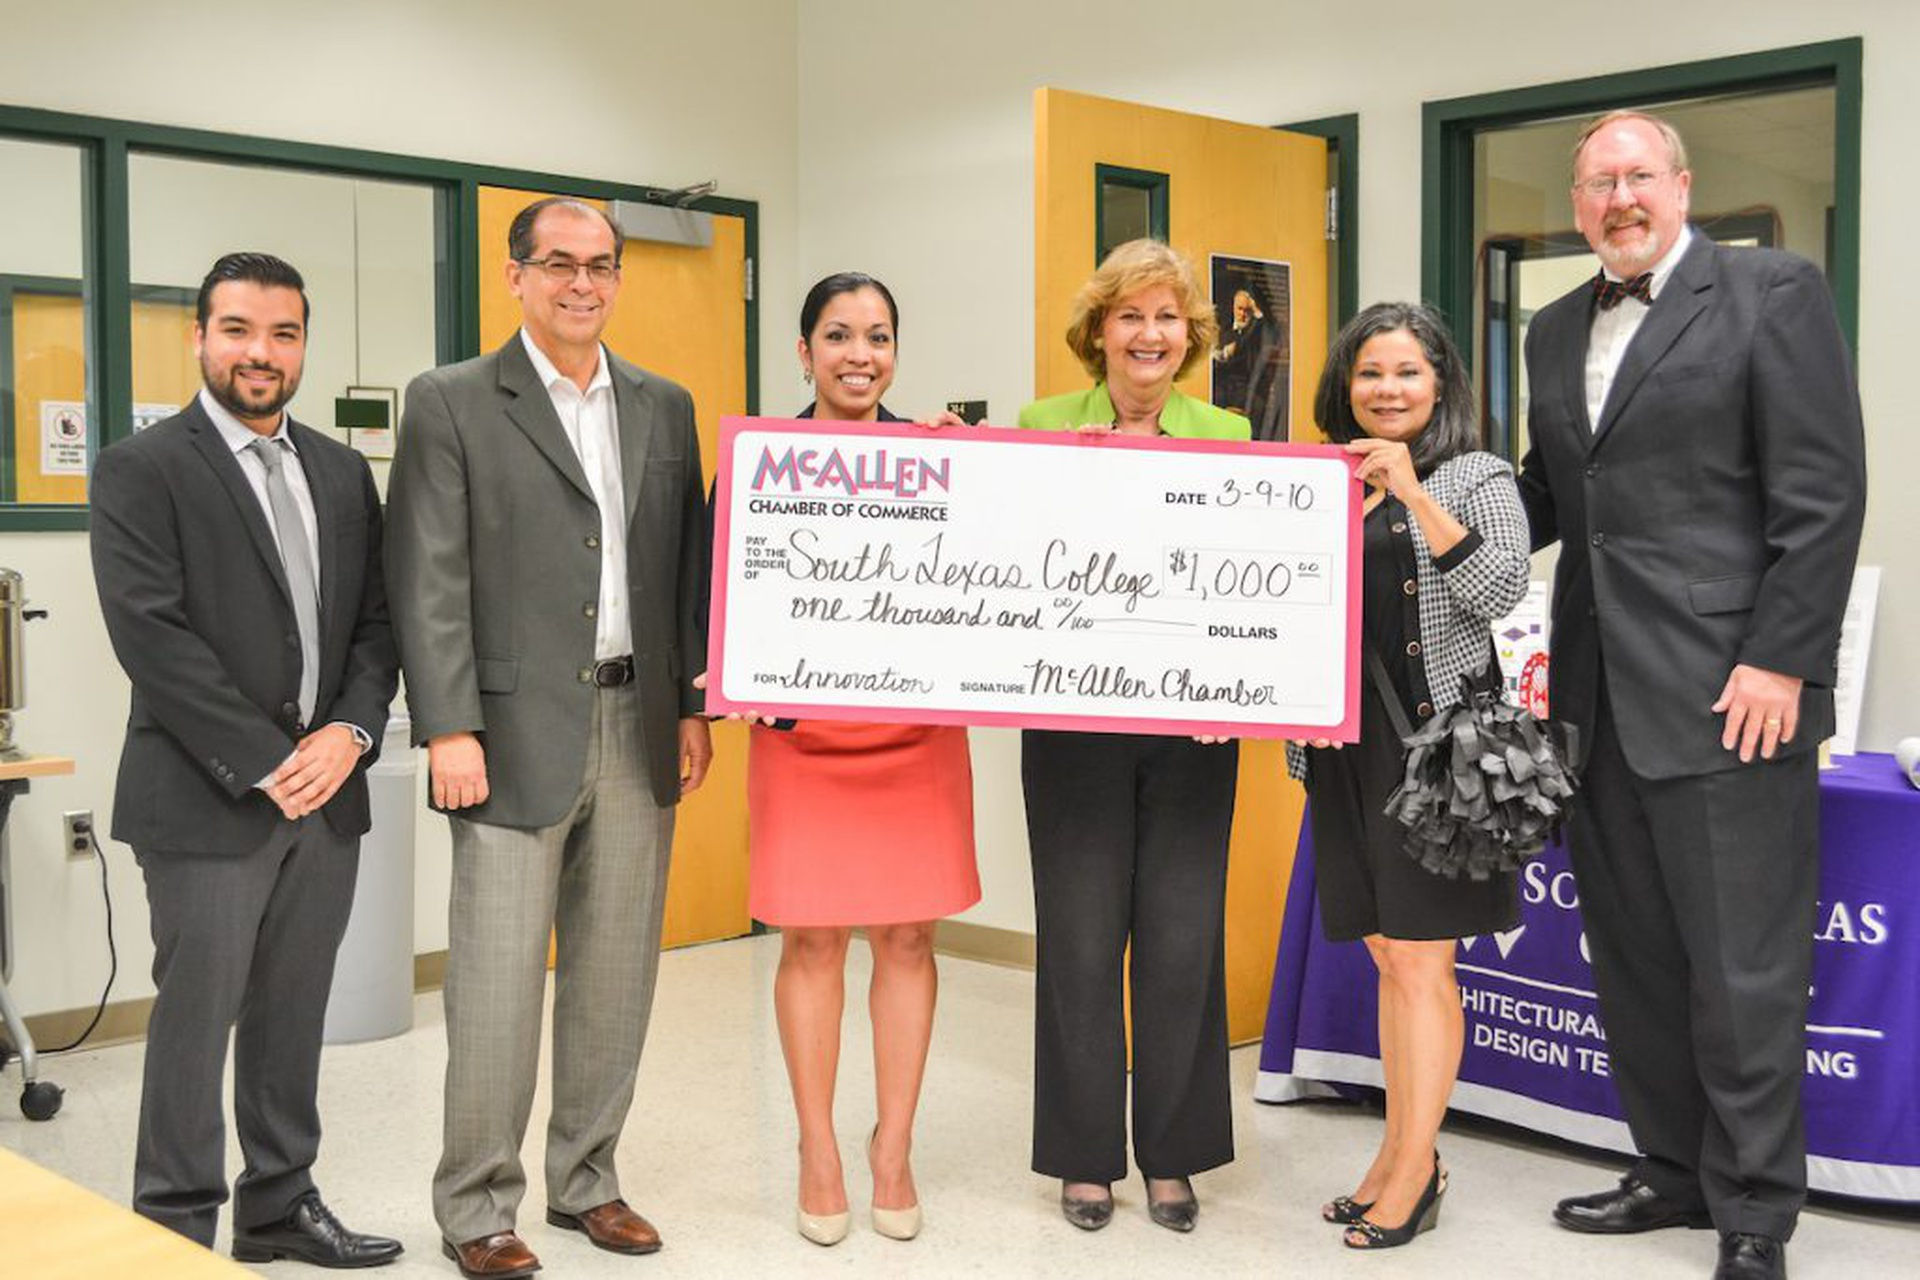 McAllen-Chamber-of-Commerce-Check-Presentation-to-STC-2-15-1024x683.jpg